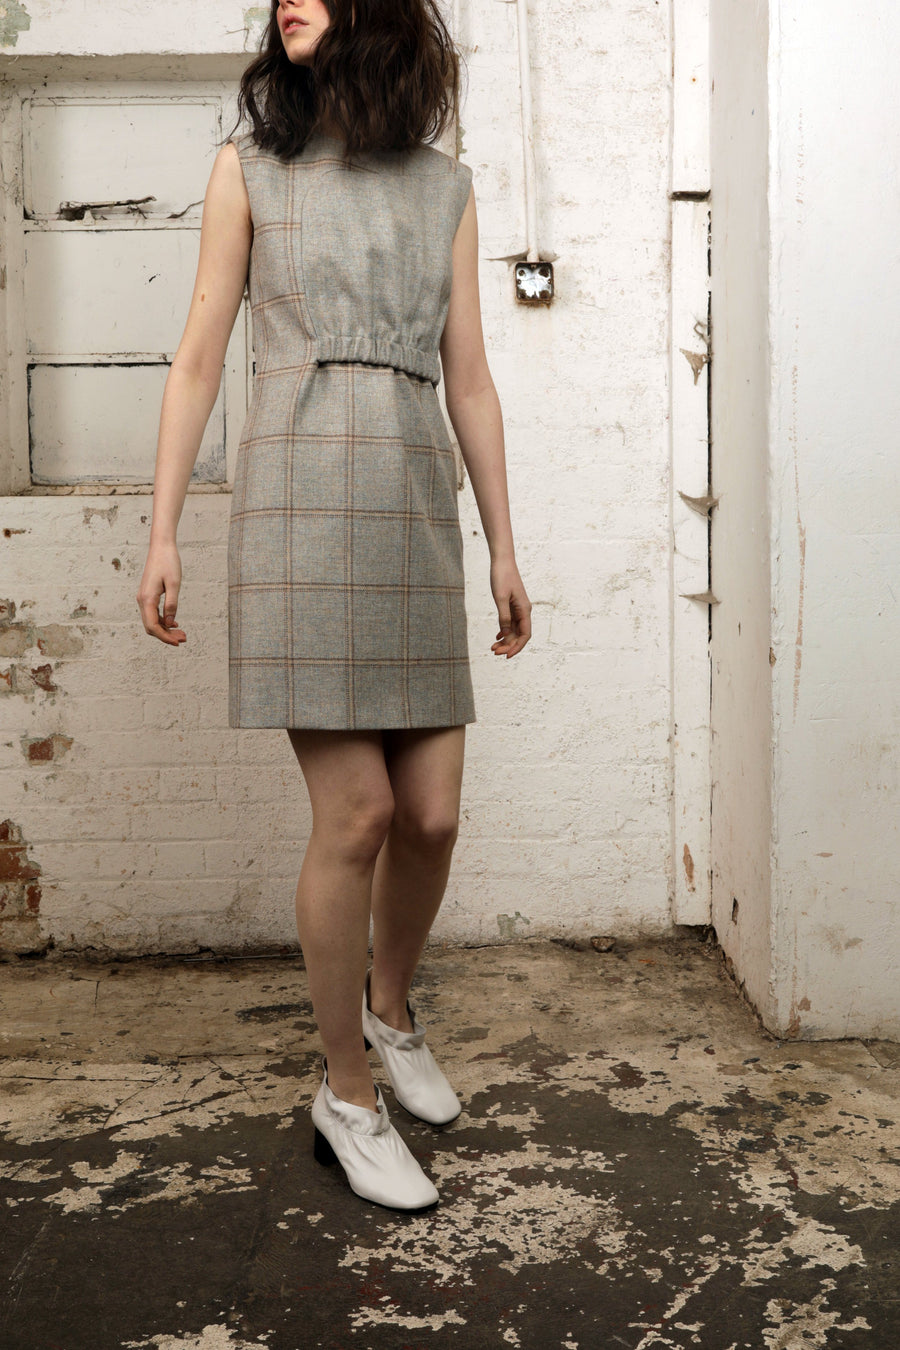 DATURA – WOOL CHECK SLEEVELESS DRESS